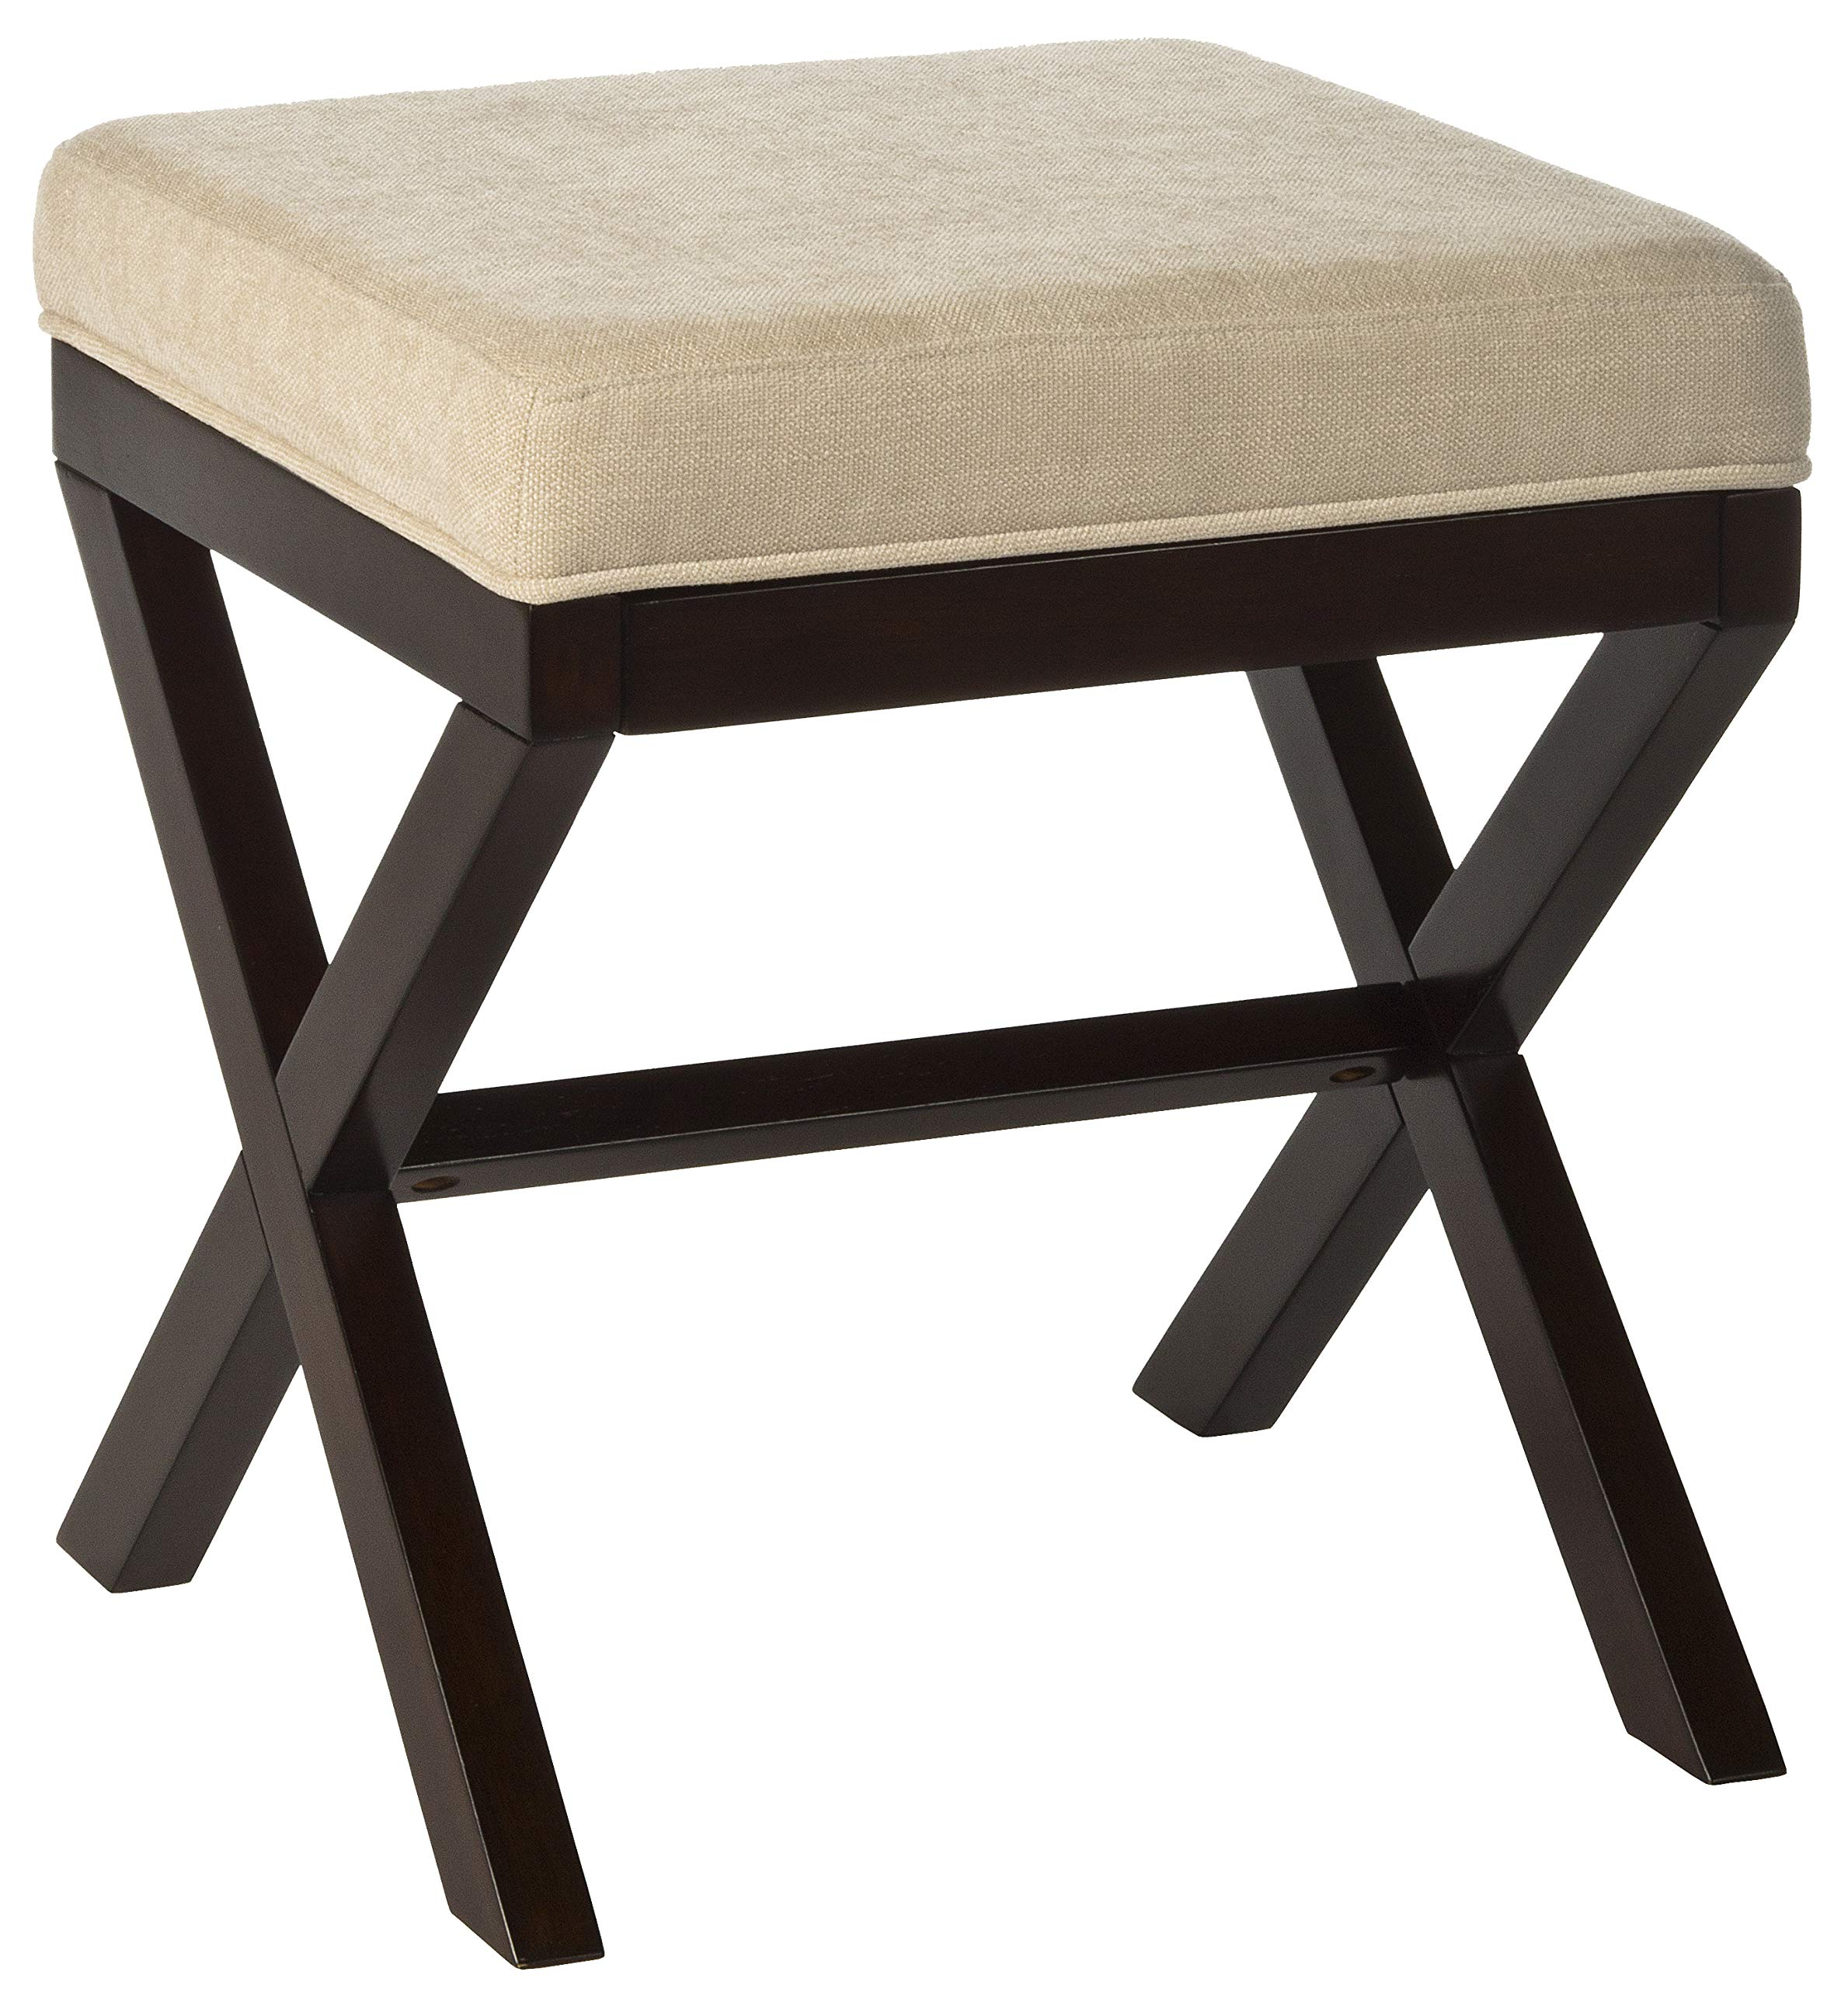 Hillsdale Furniture 50964 Morgan Vanity Stool, Espresso Wood and Stone Upholstery